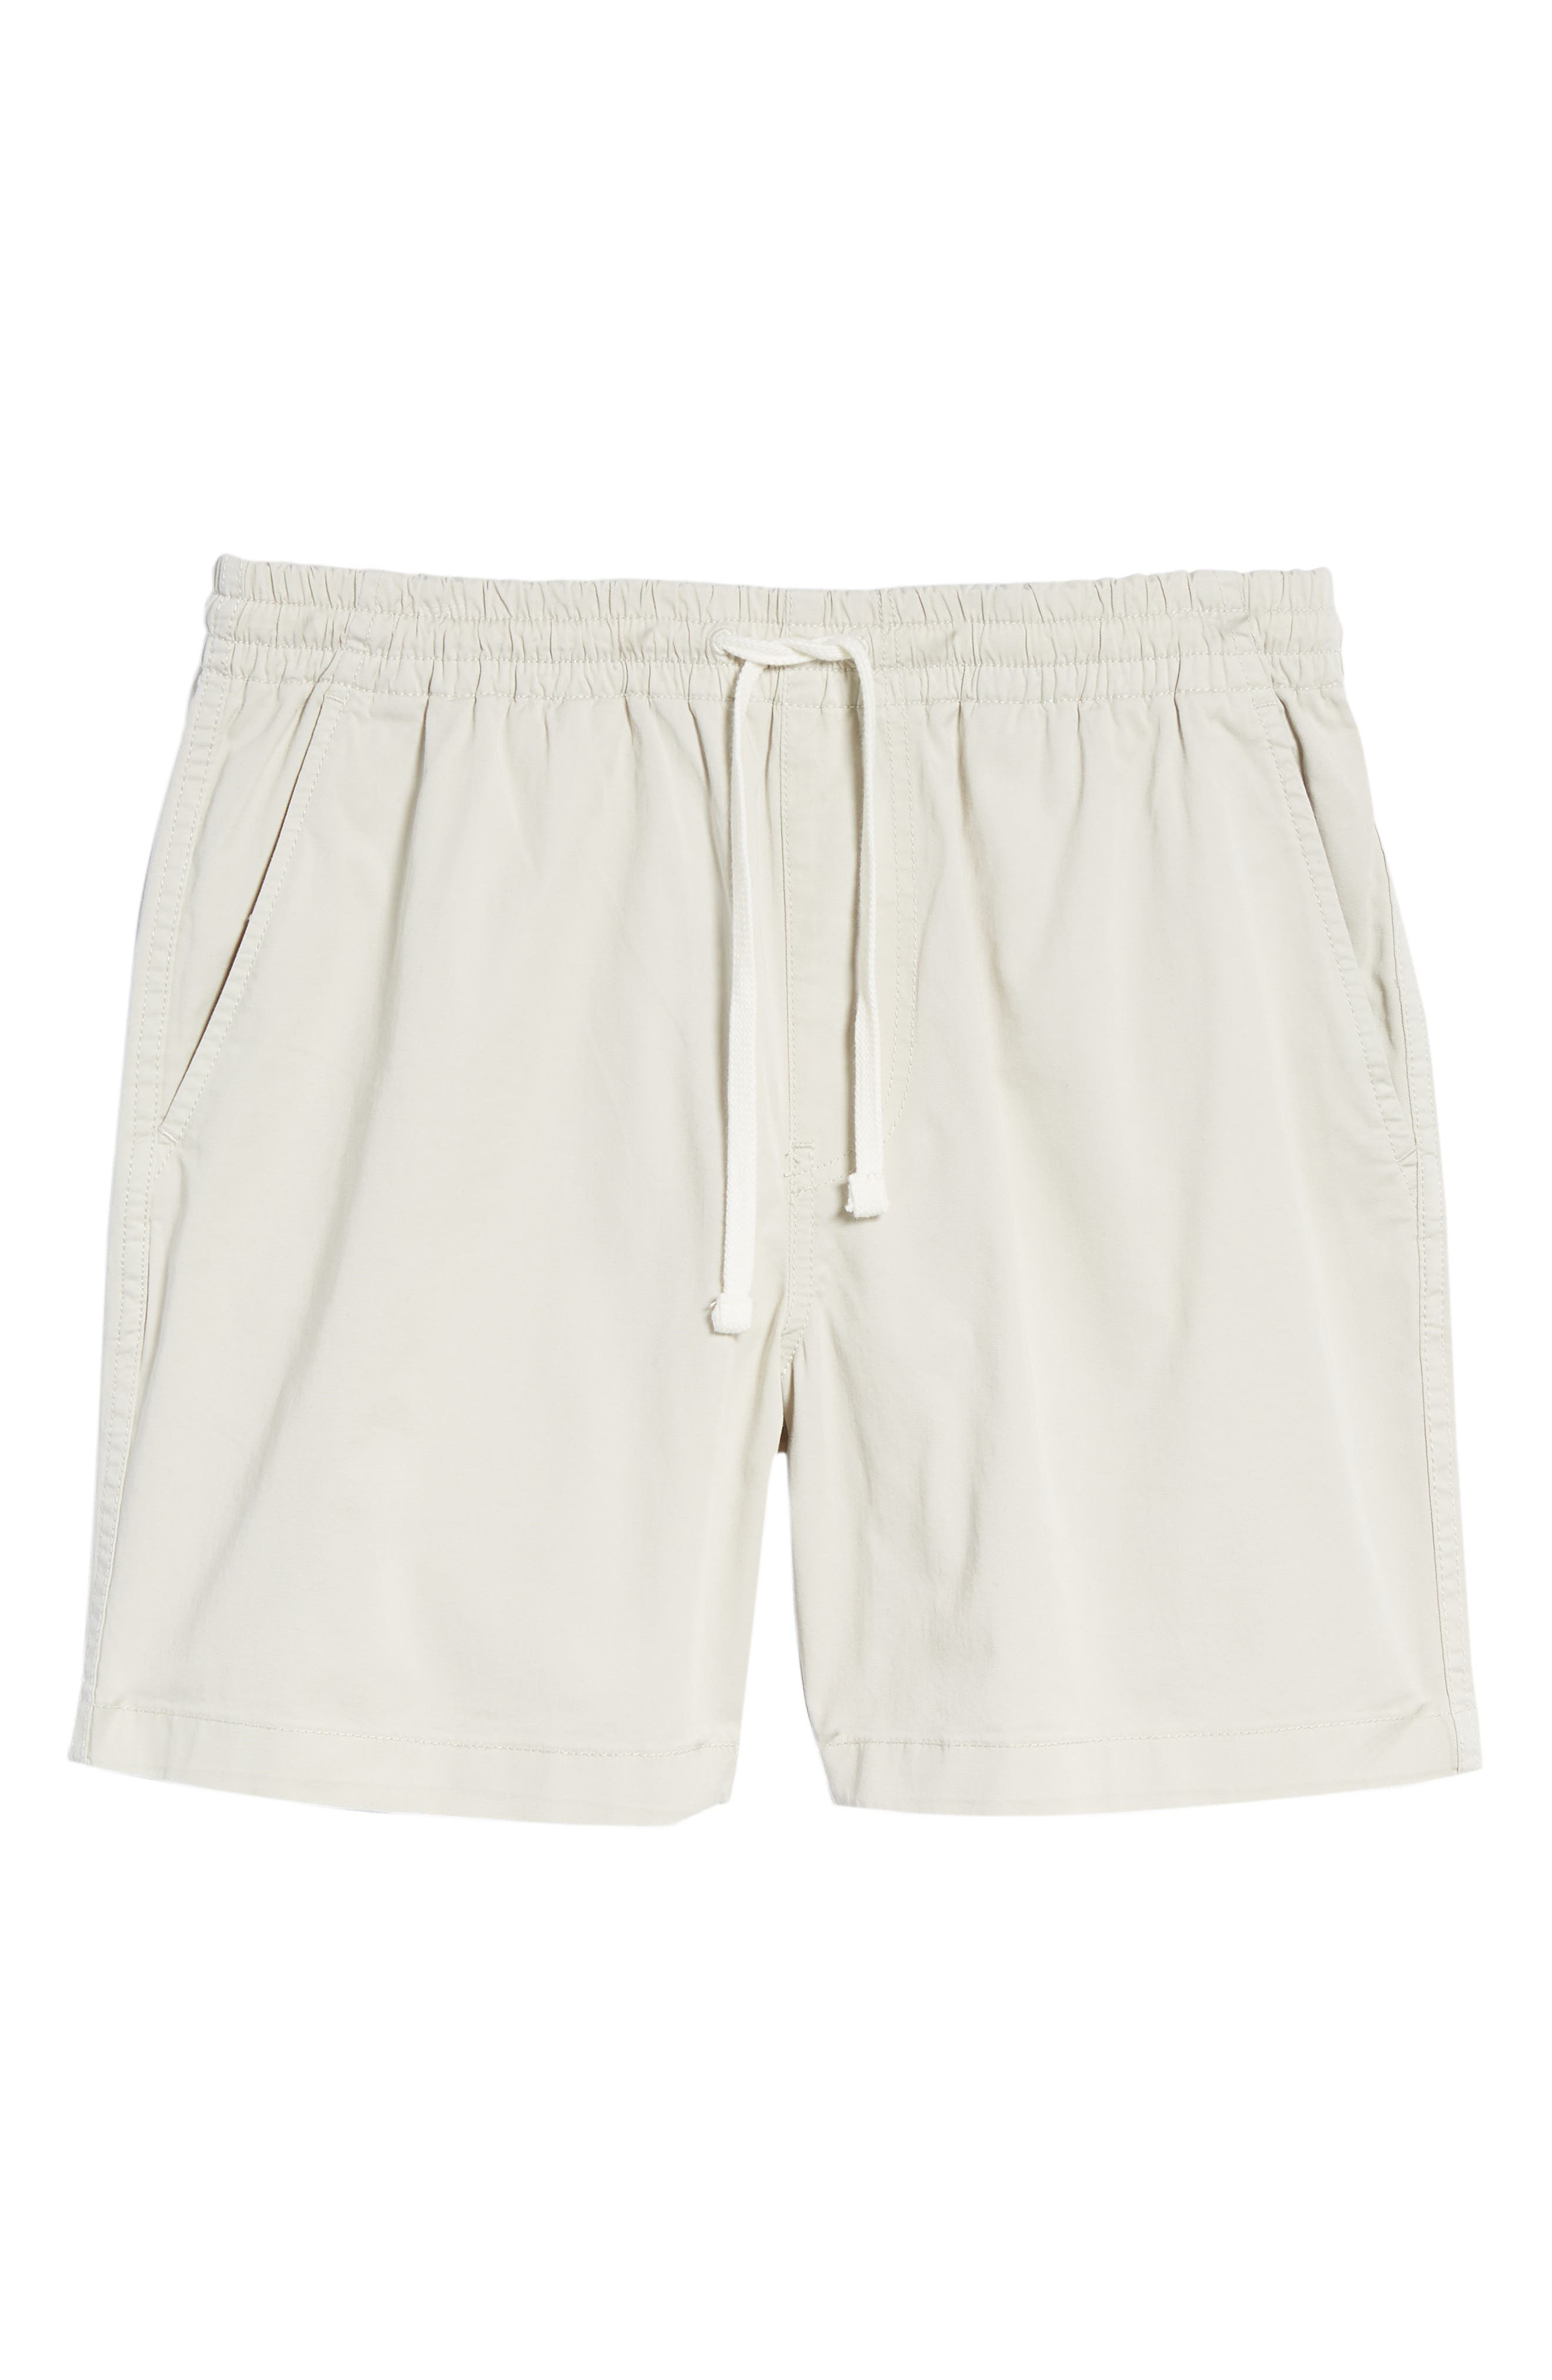 Stretch Chino Dock Shorts,                             Alternate thumbnail 6, color,                             020